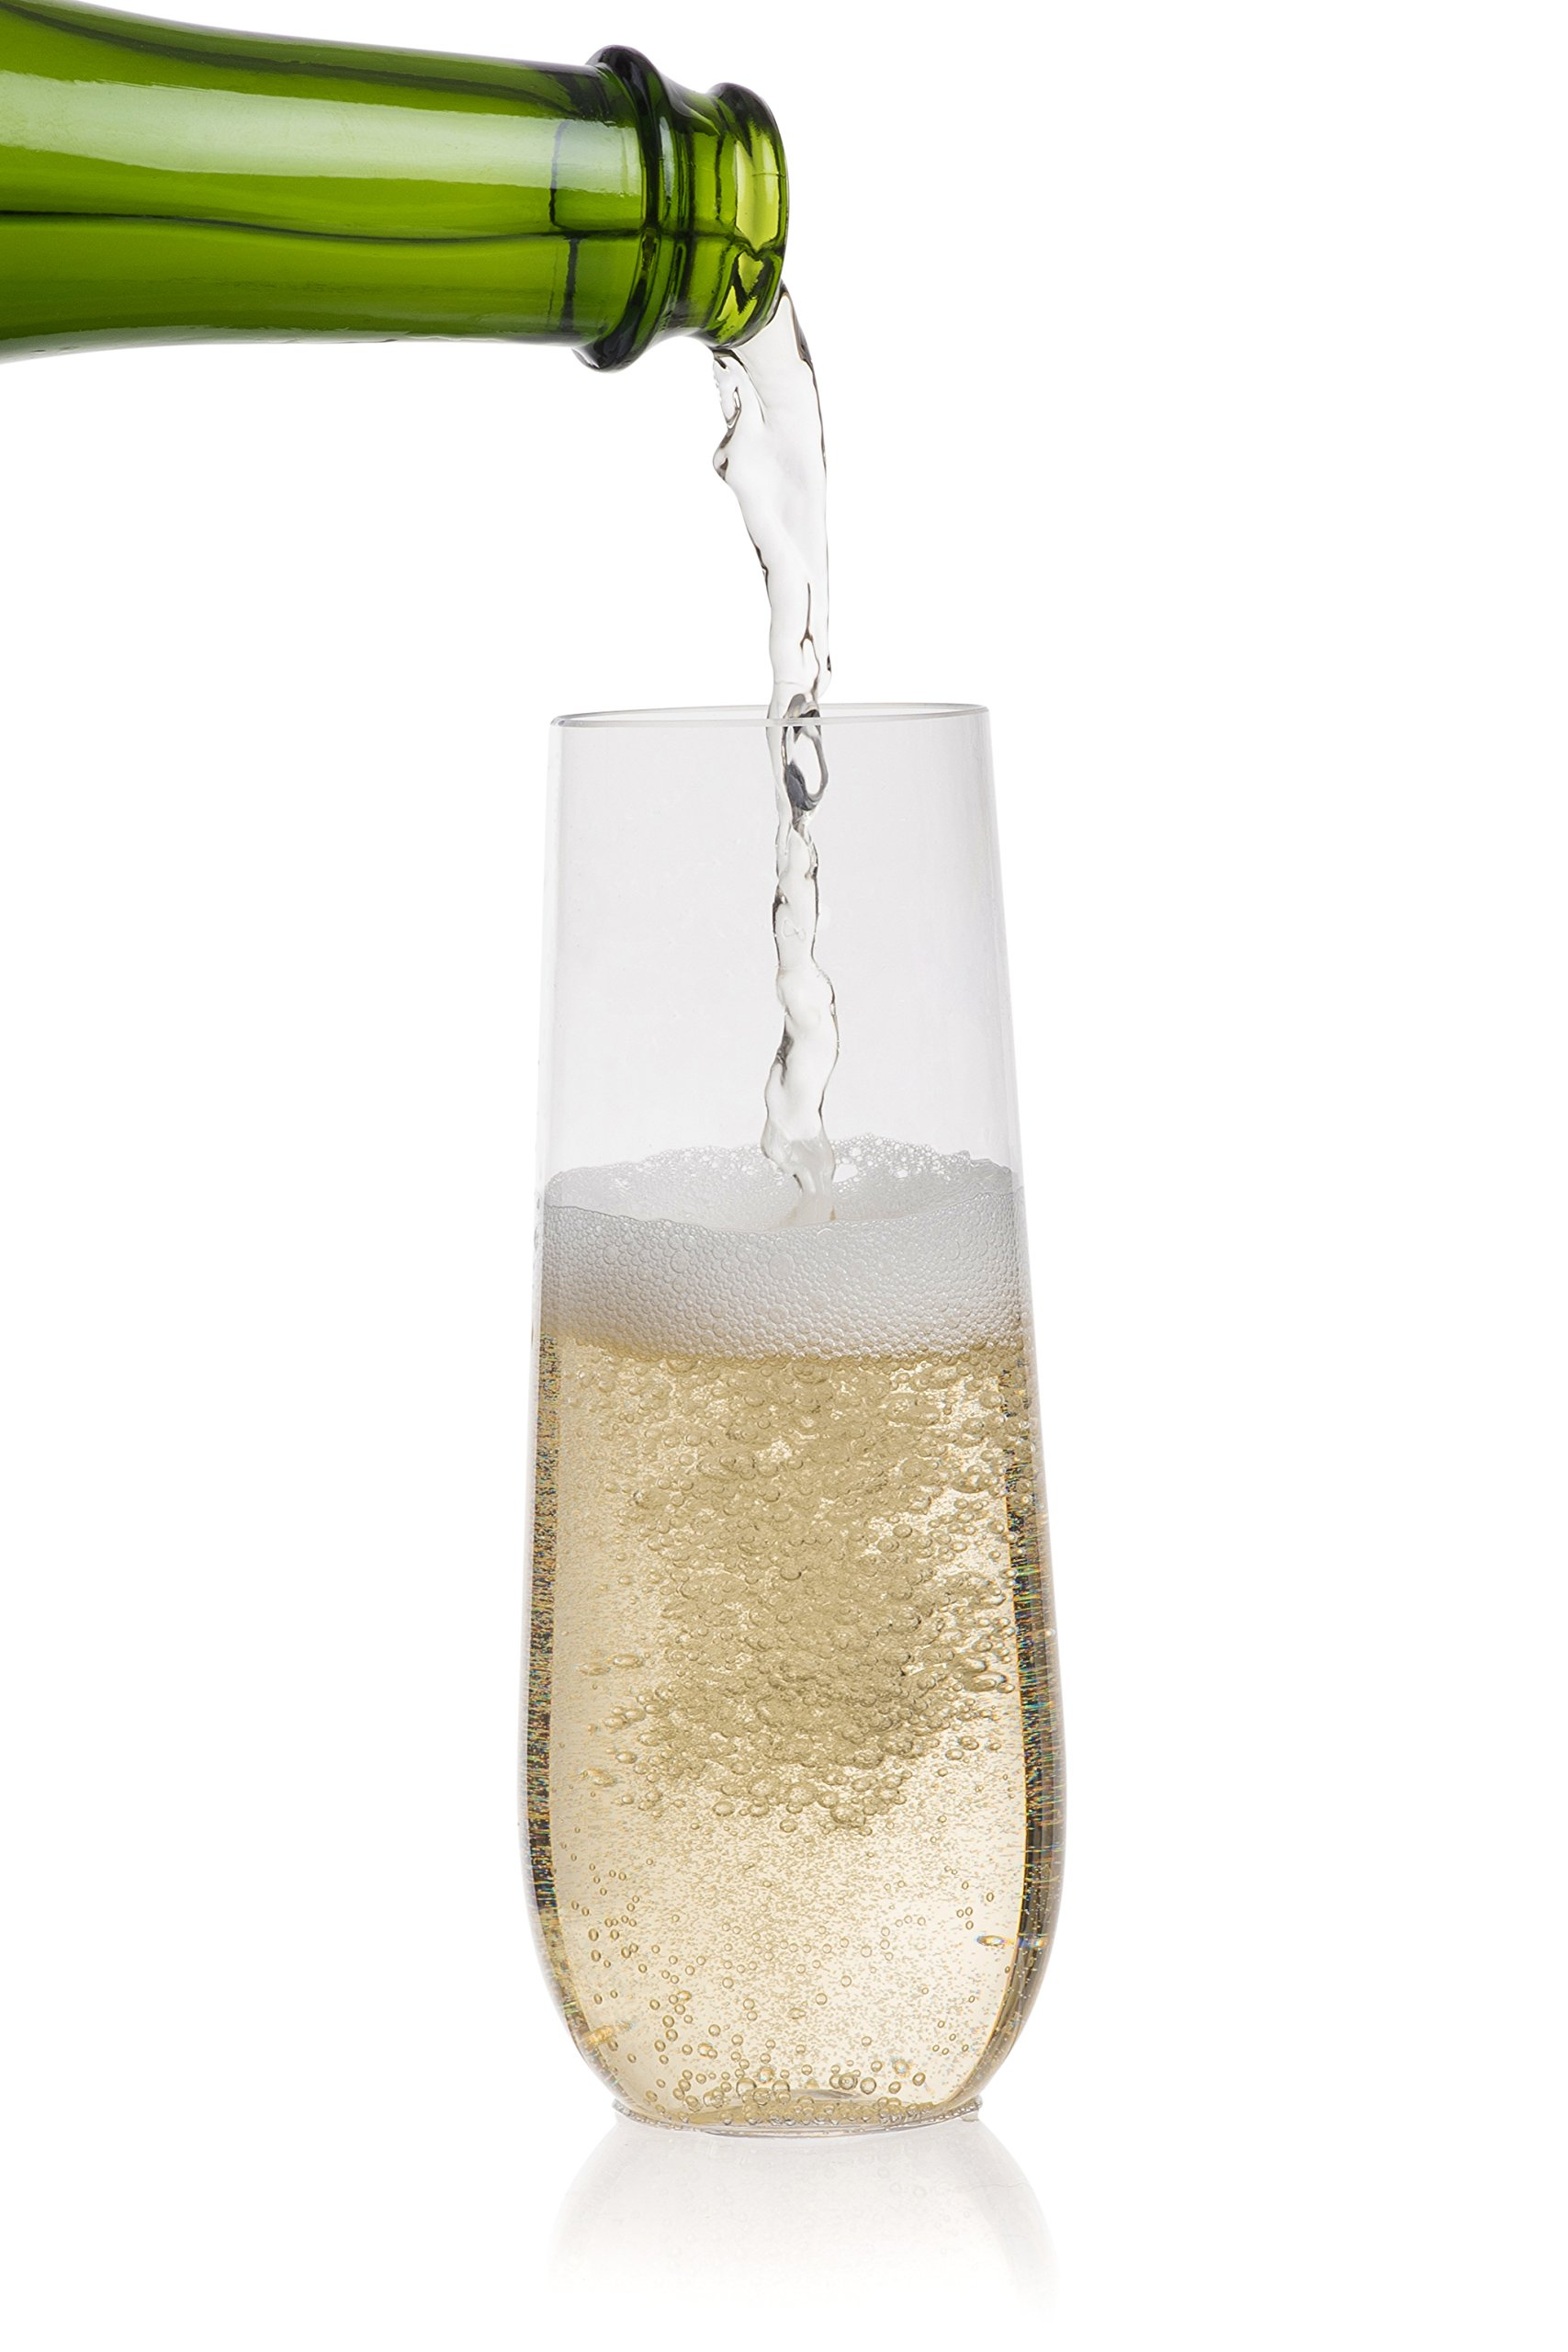 BEREVINO PLASTIC CHAMPAGNE FLUTES / CHAMPAGNE GLASSES | 9 Oz Stemless Champagne Flutes Set of 12 Clear Plastic Unbreakable Toasting Glasses, Disposable / Reusable Perfect for Wedding or Party